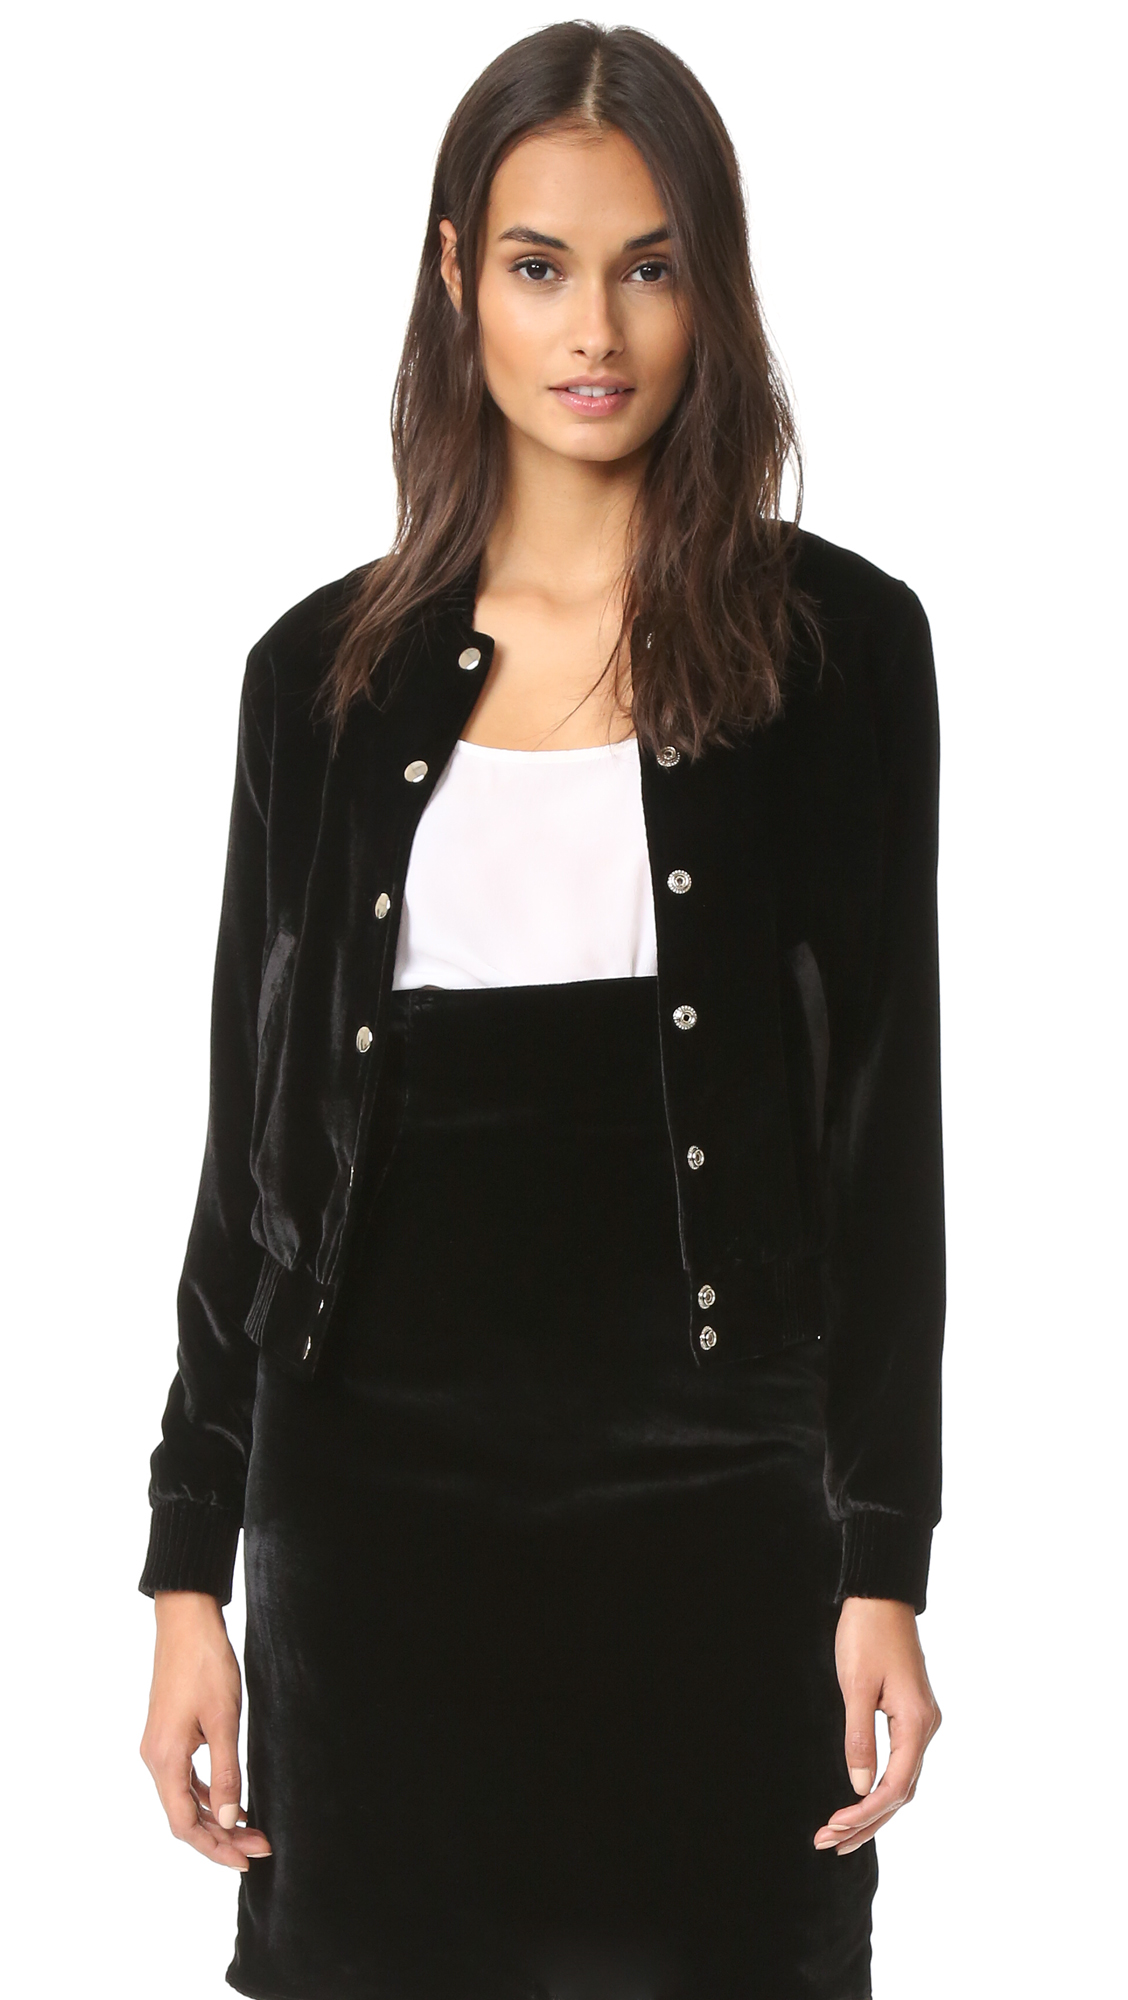 Plush velvet gives this ThePerfext bomber jacket a luxe, dressy look. Ribbing cinches the edges, and polished snaps fasten the placket. 2 pockets. Silk lining. Fabric: Velvet. Shell: 82% rayon/18% silk. Lining: 100% silk. Dry clean. Made in the